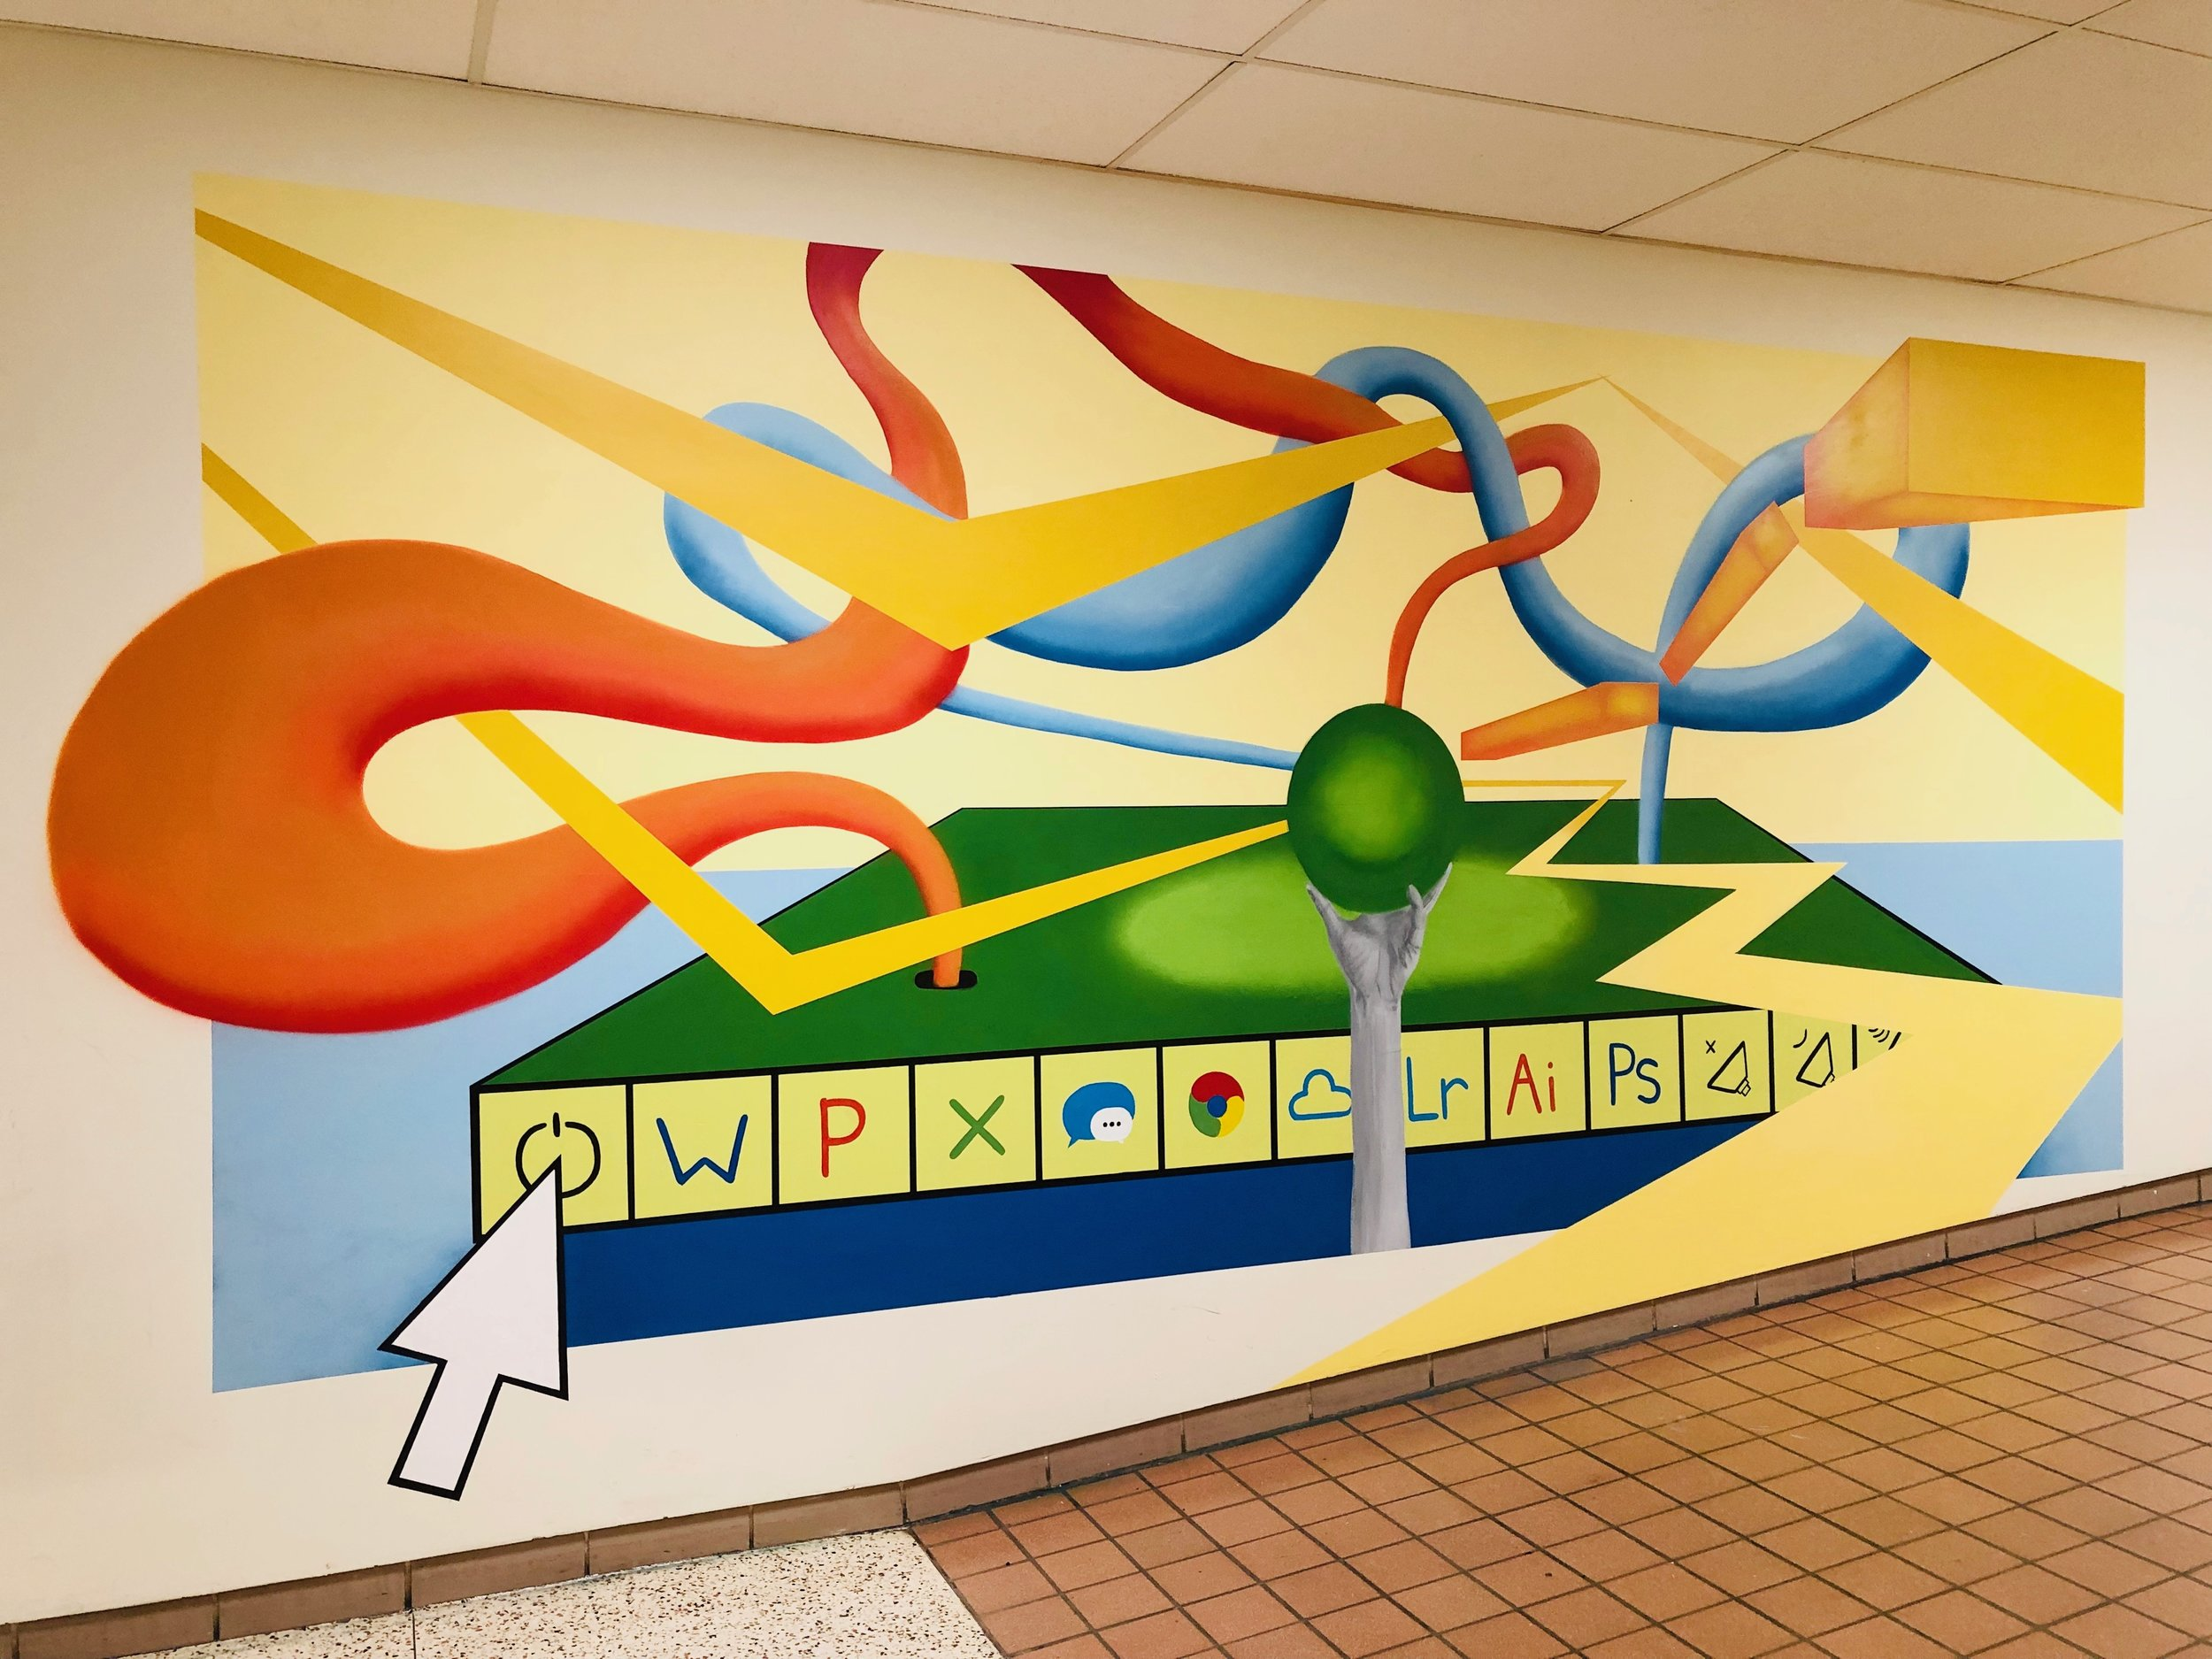 15' x 10' acrylic(s) on drywall w/ mixed reality capabilities @ Moorestown High School (Moorestown, New Jersey) in collaboration with @onlymcm